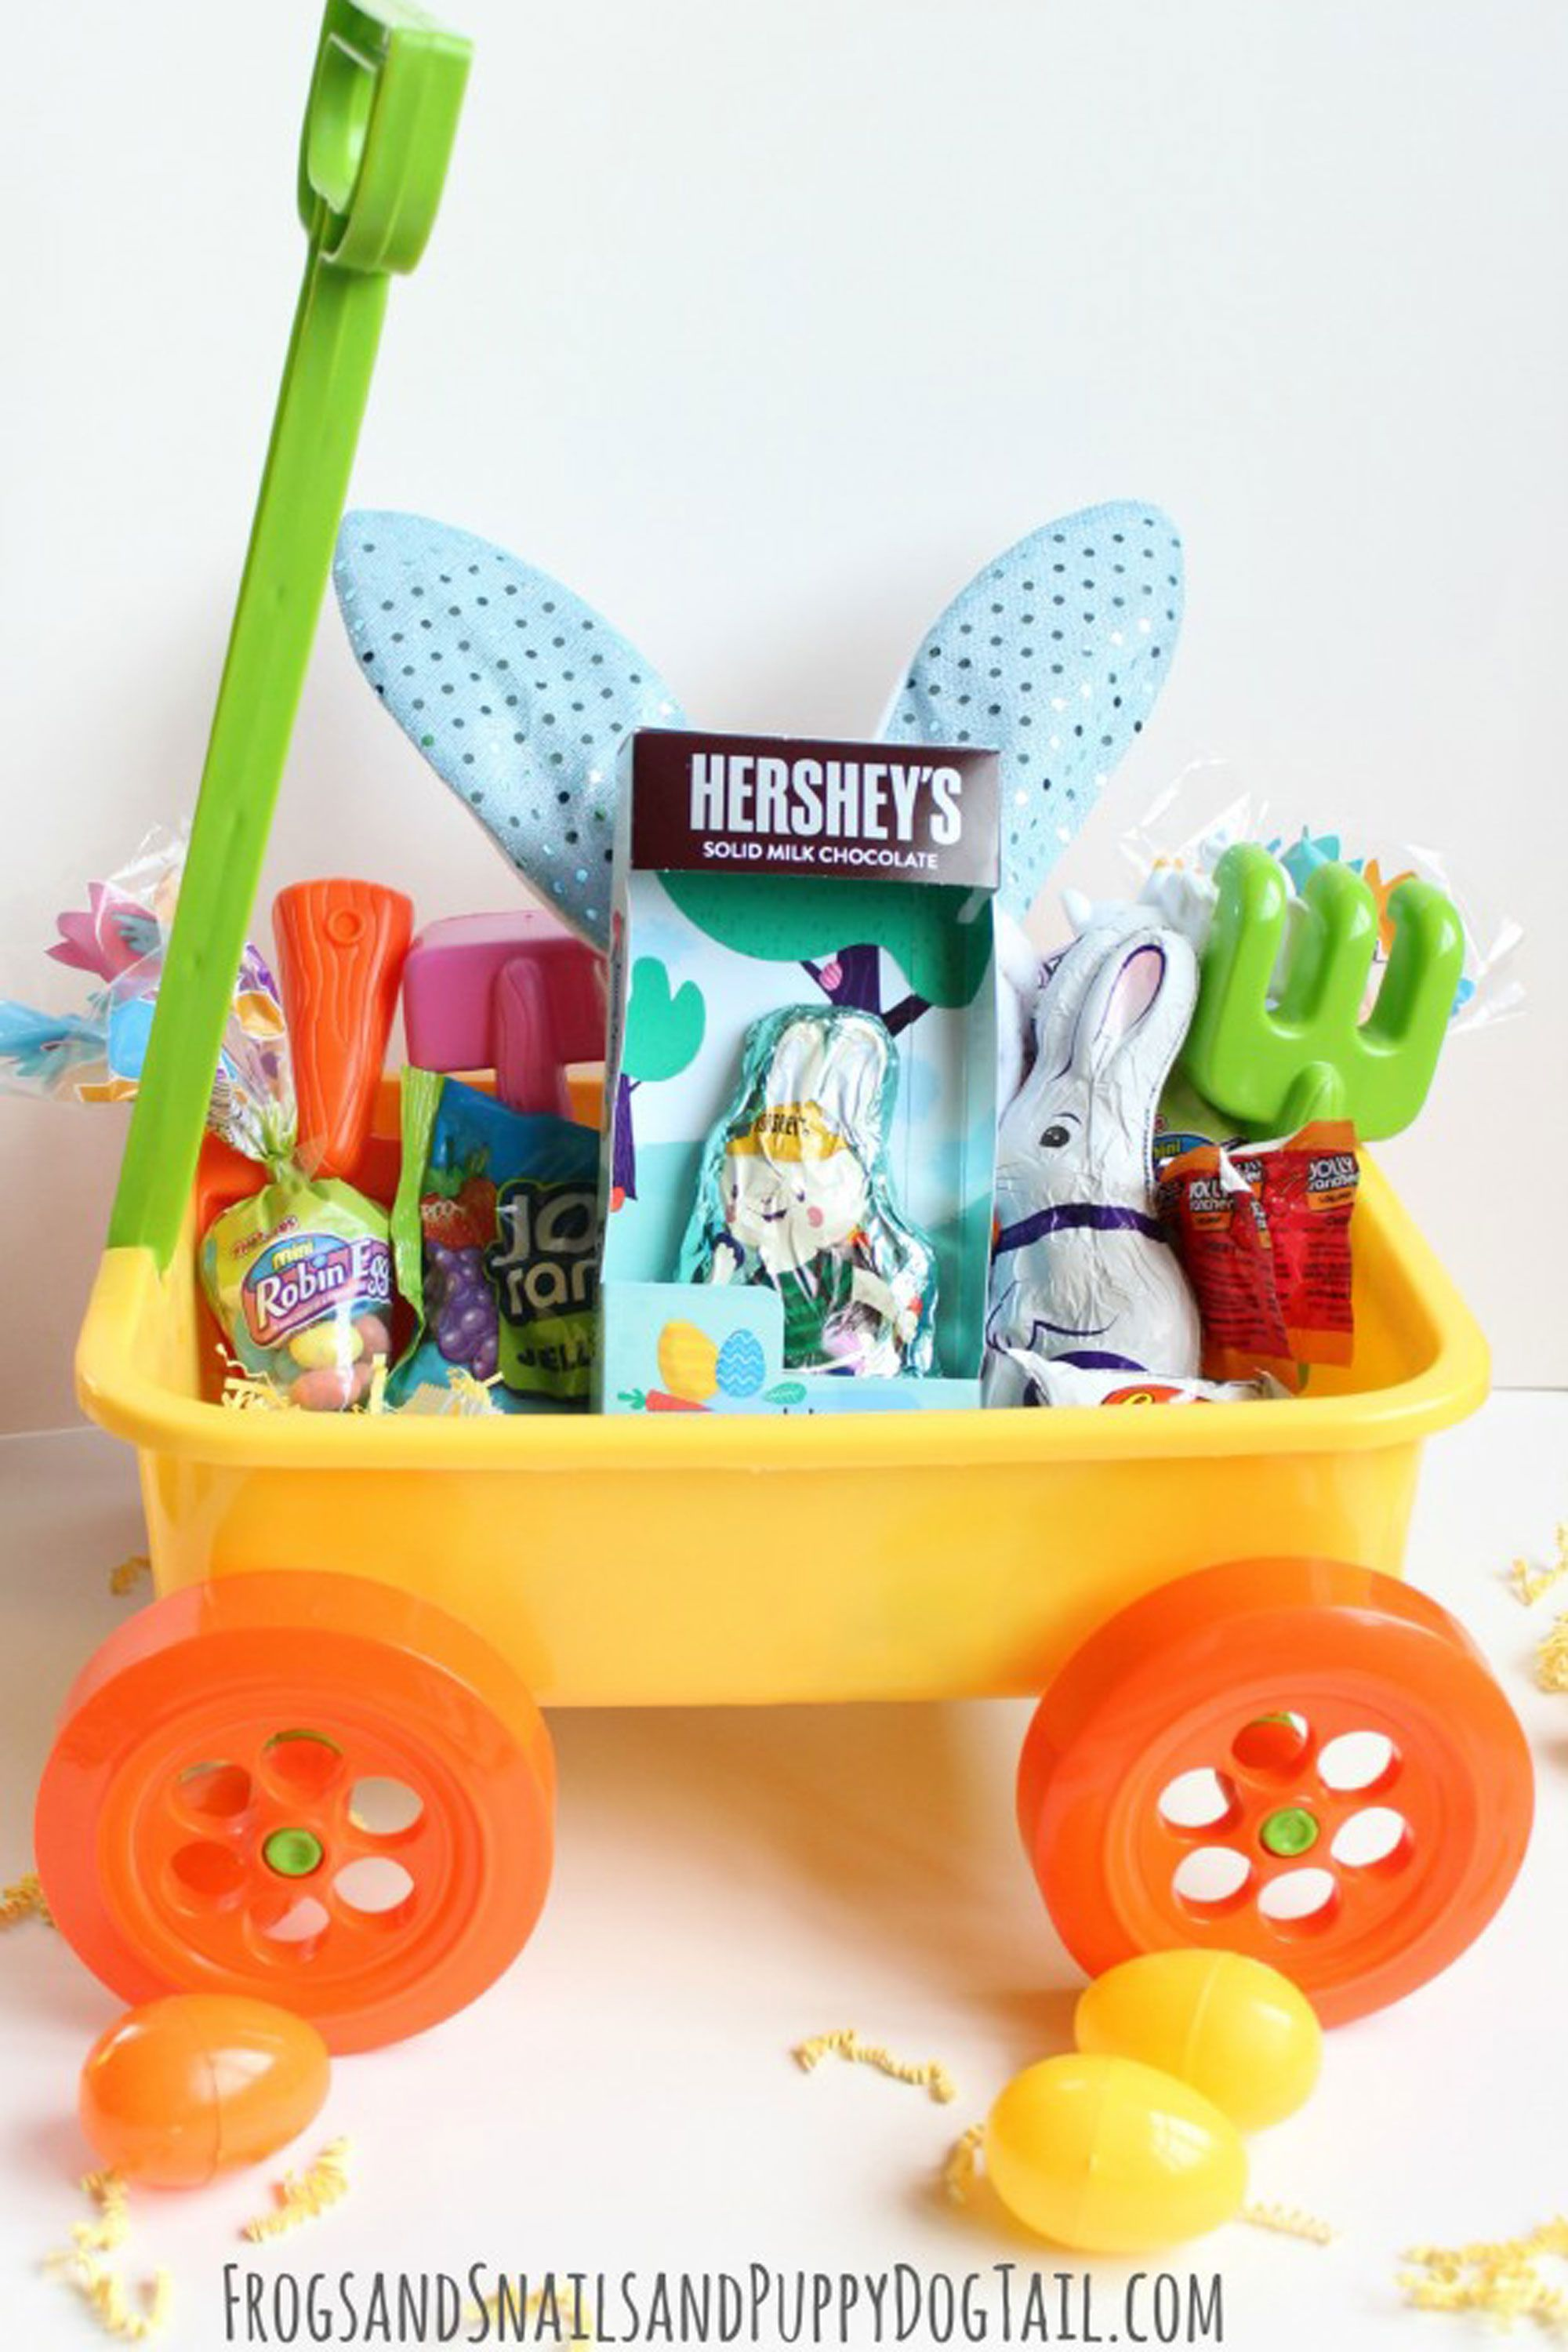 16 Easter Basket Ideas For Kids Best Gifts Babies Toddlers And Agers